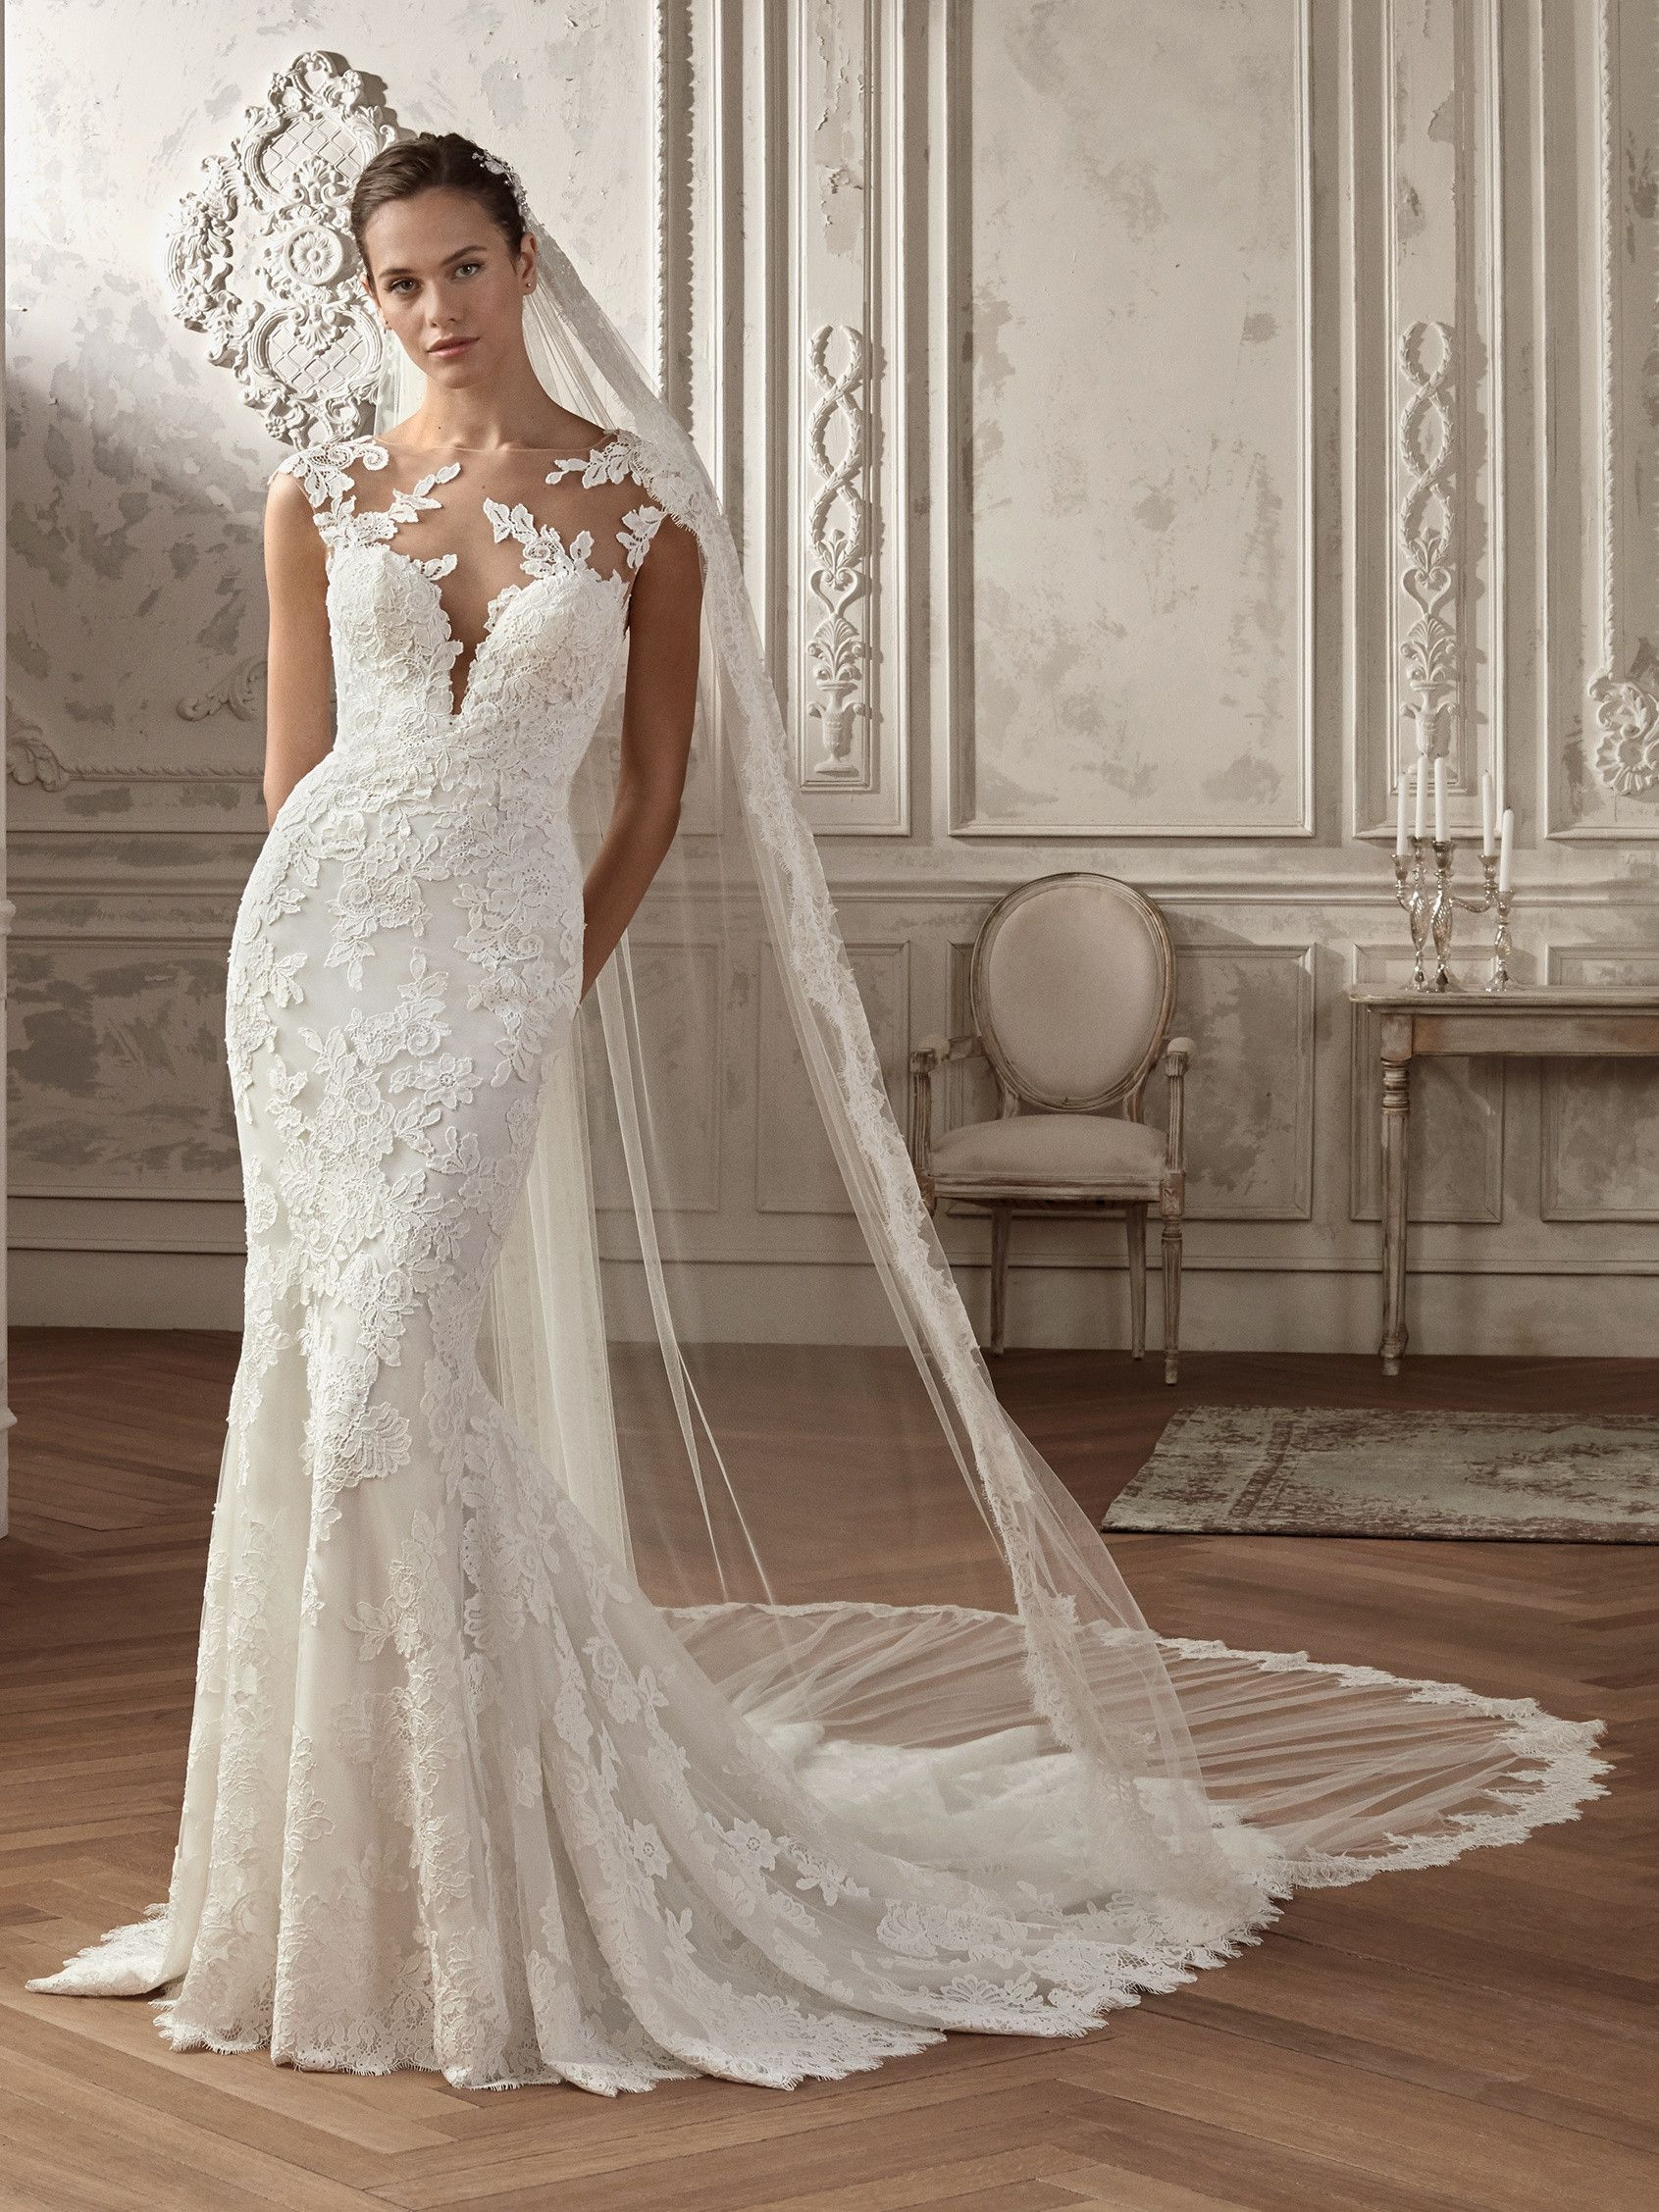 Best wedding dresses for 50 year olds  Sensuality and sweetness Two concepts that blend in this wedding